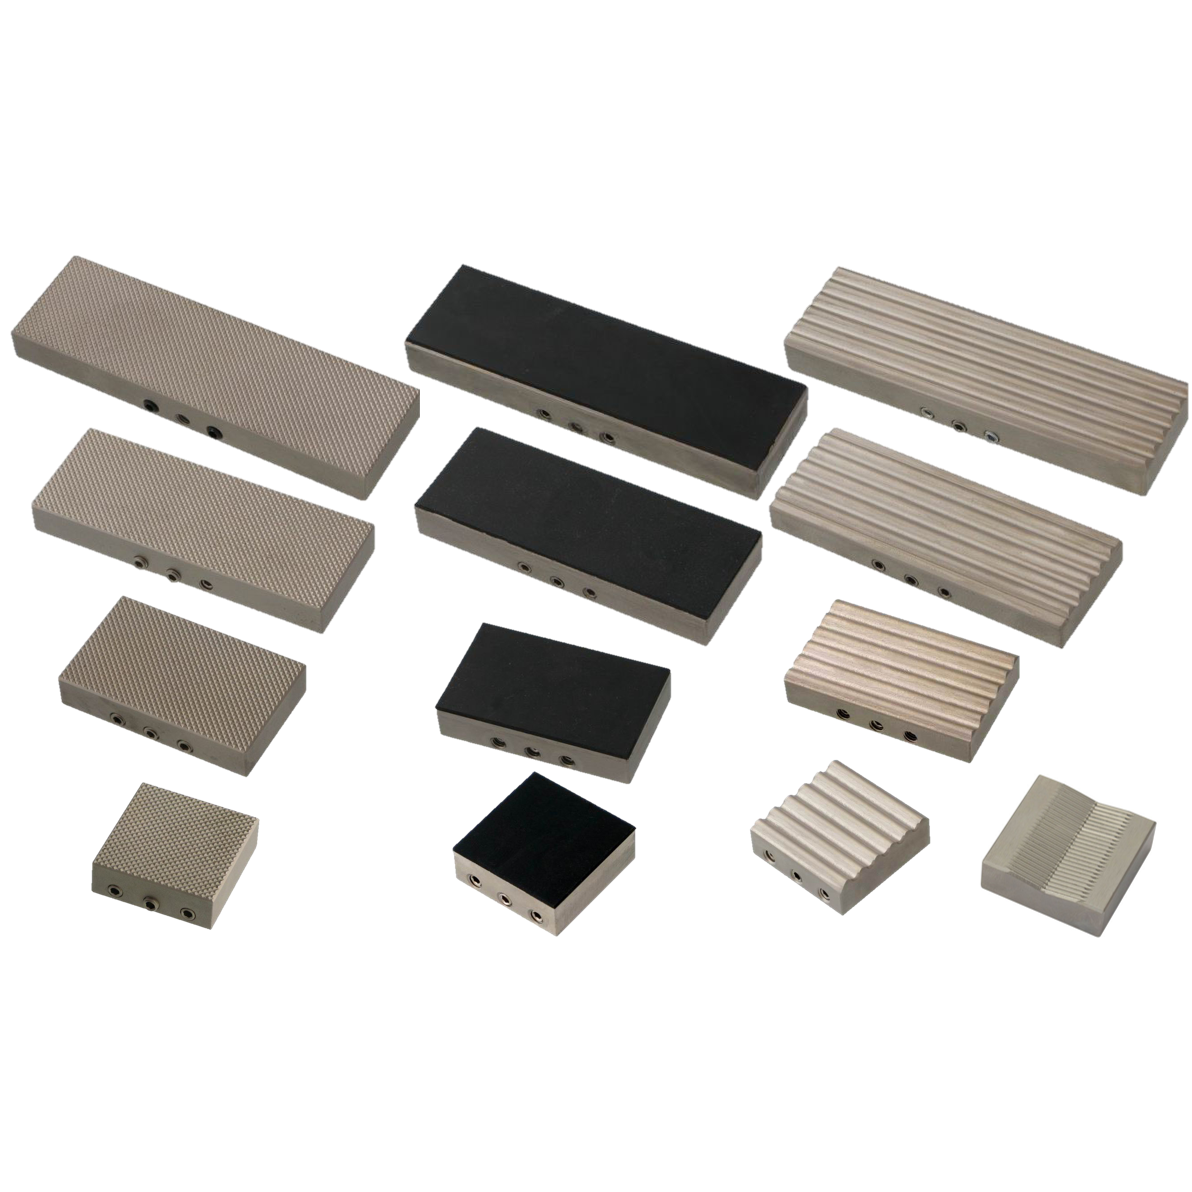 Jaw with widths of 30, 50, 80 and 100 mm for different sample sizes.